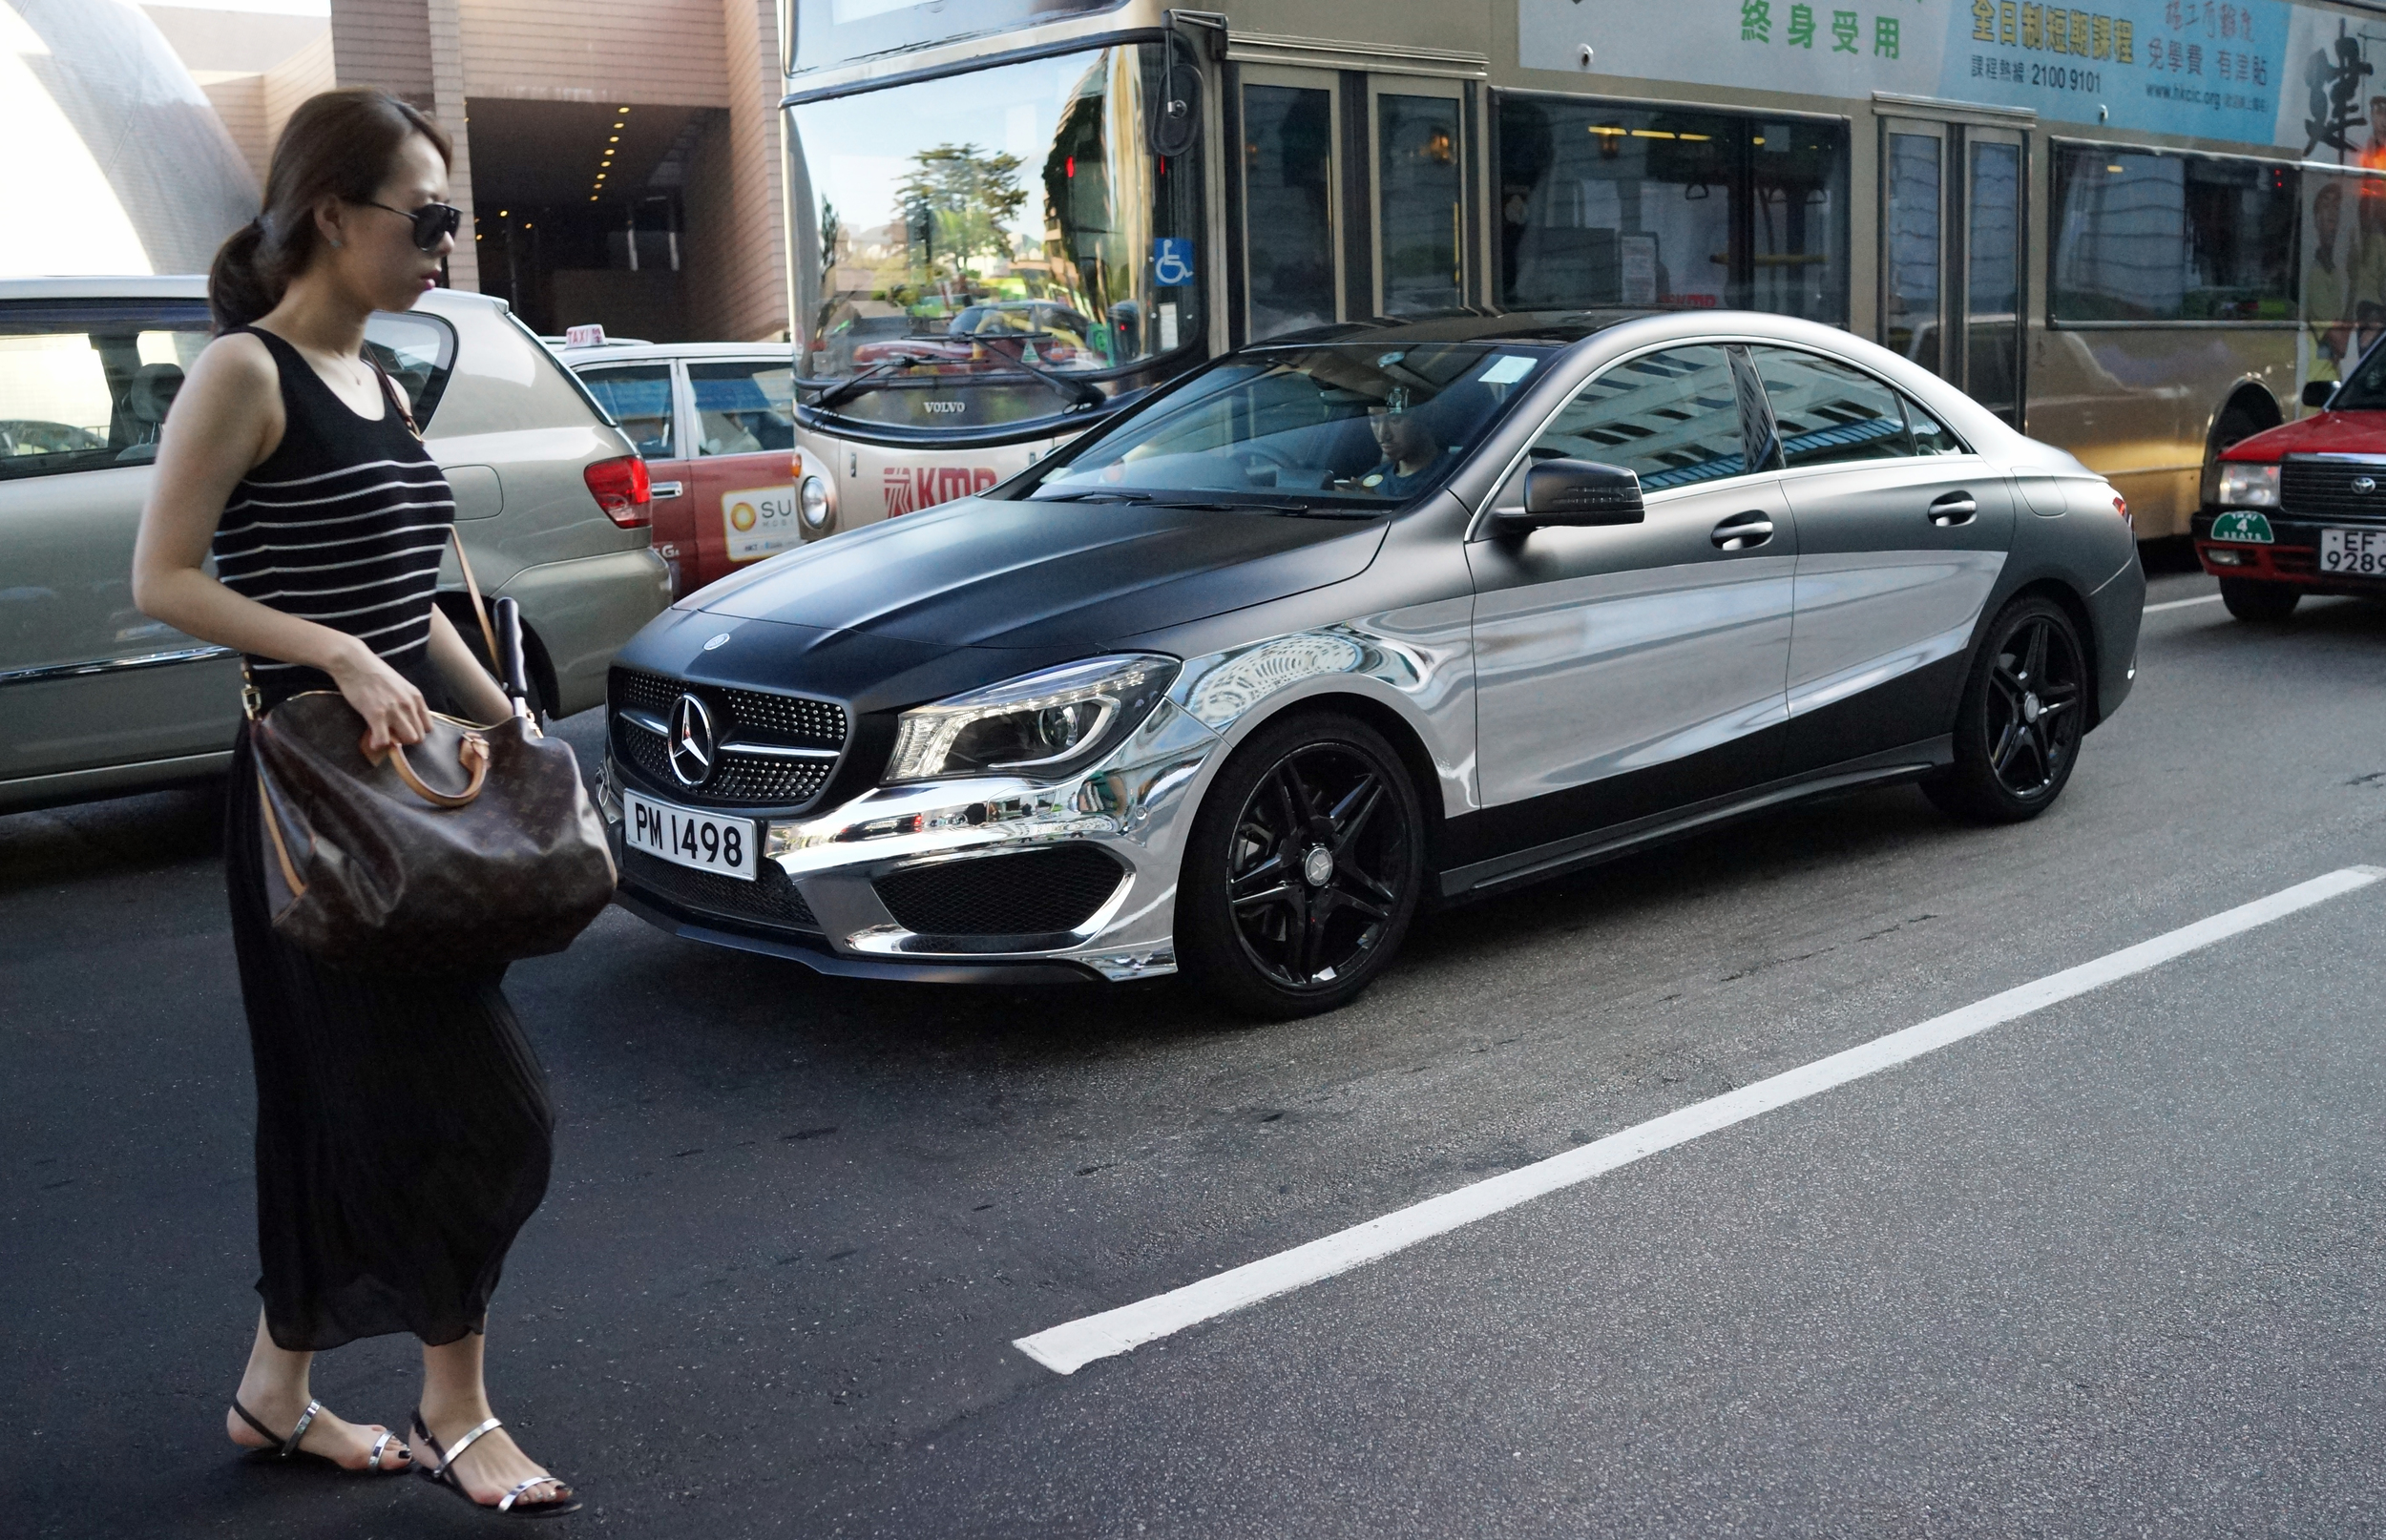 My focus was on the awesome half metallic Mercedes Benz in the background, it was only later I noticed the lady and her LV bag - a perfect fit for the guy driving the Benz! -